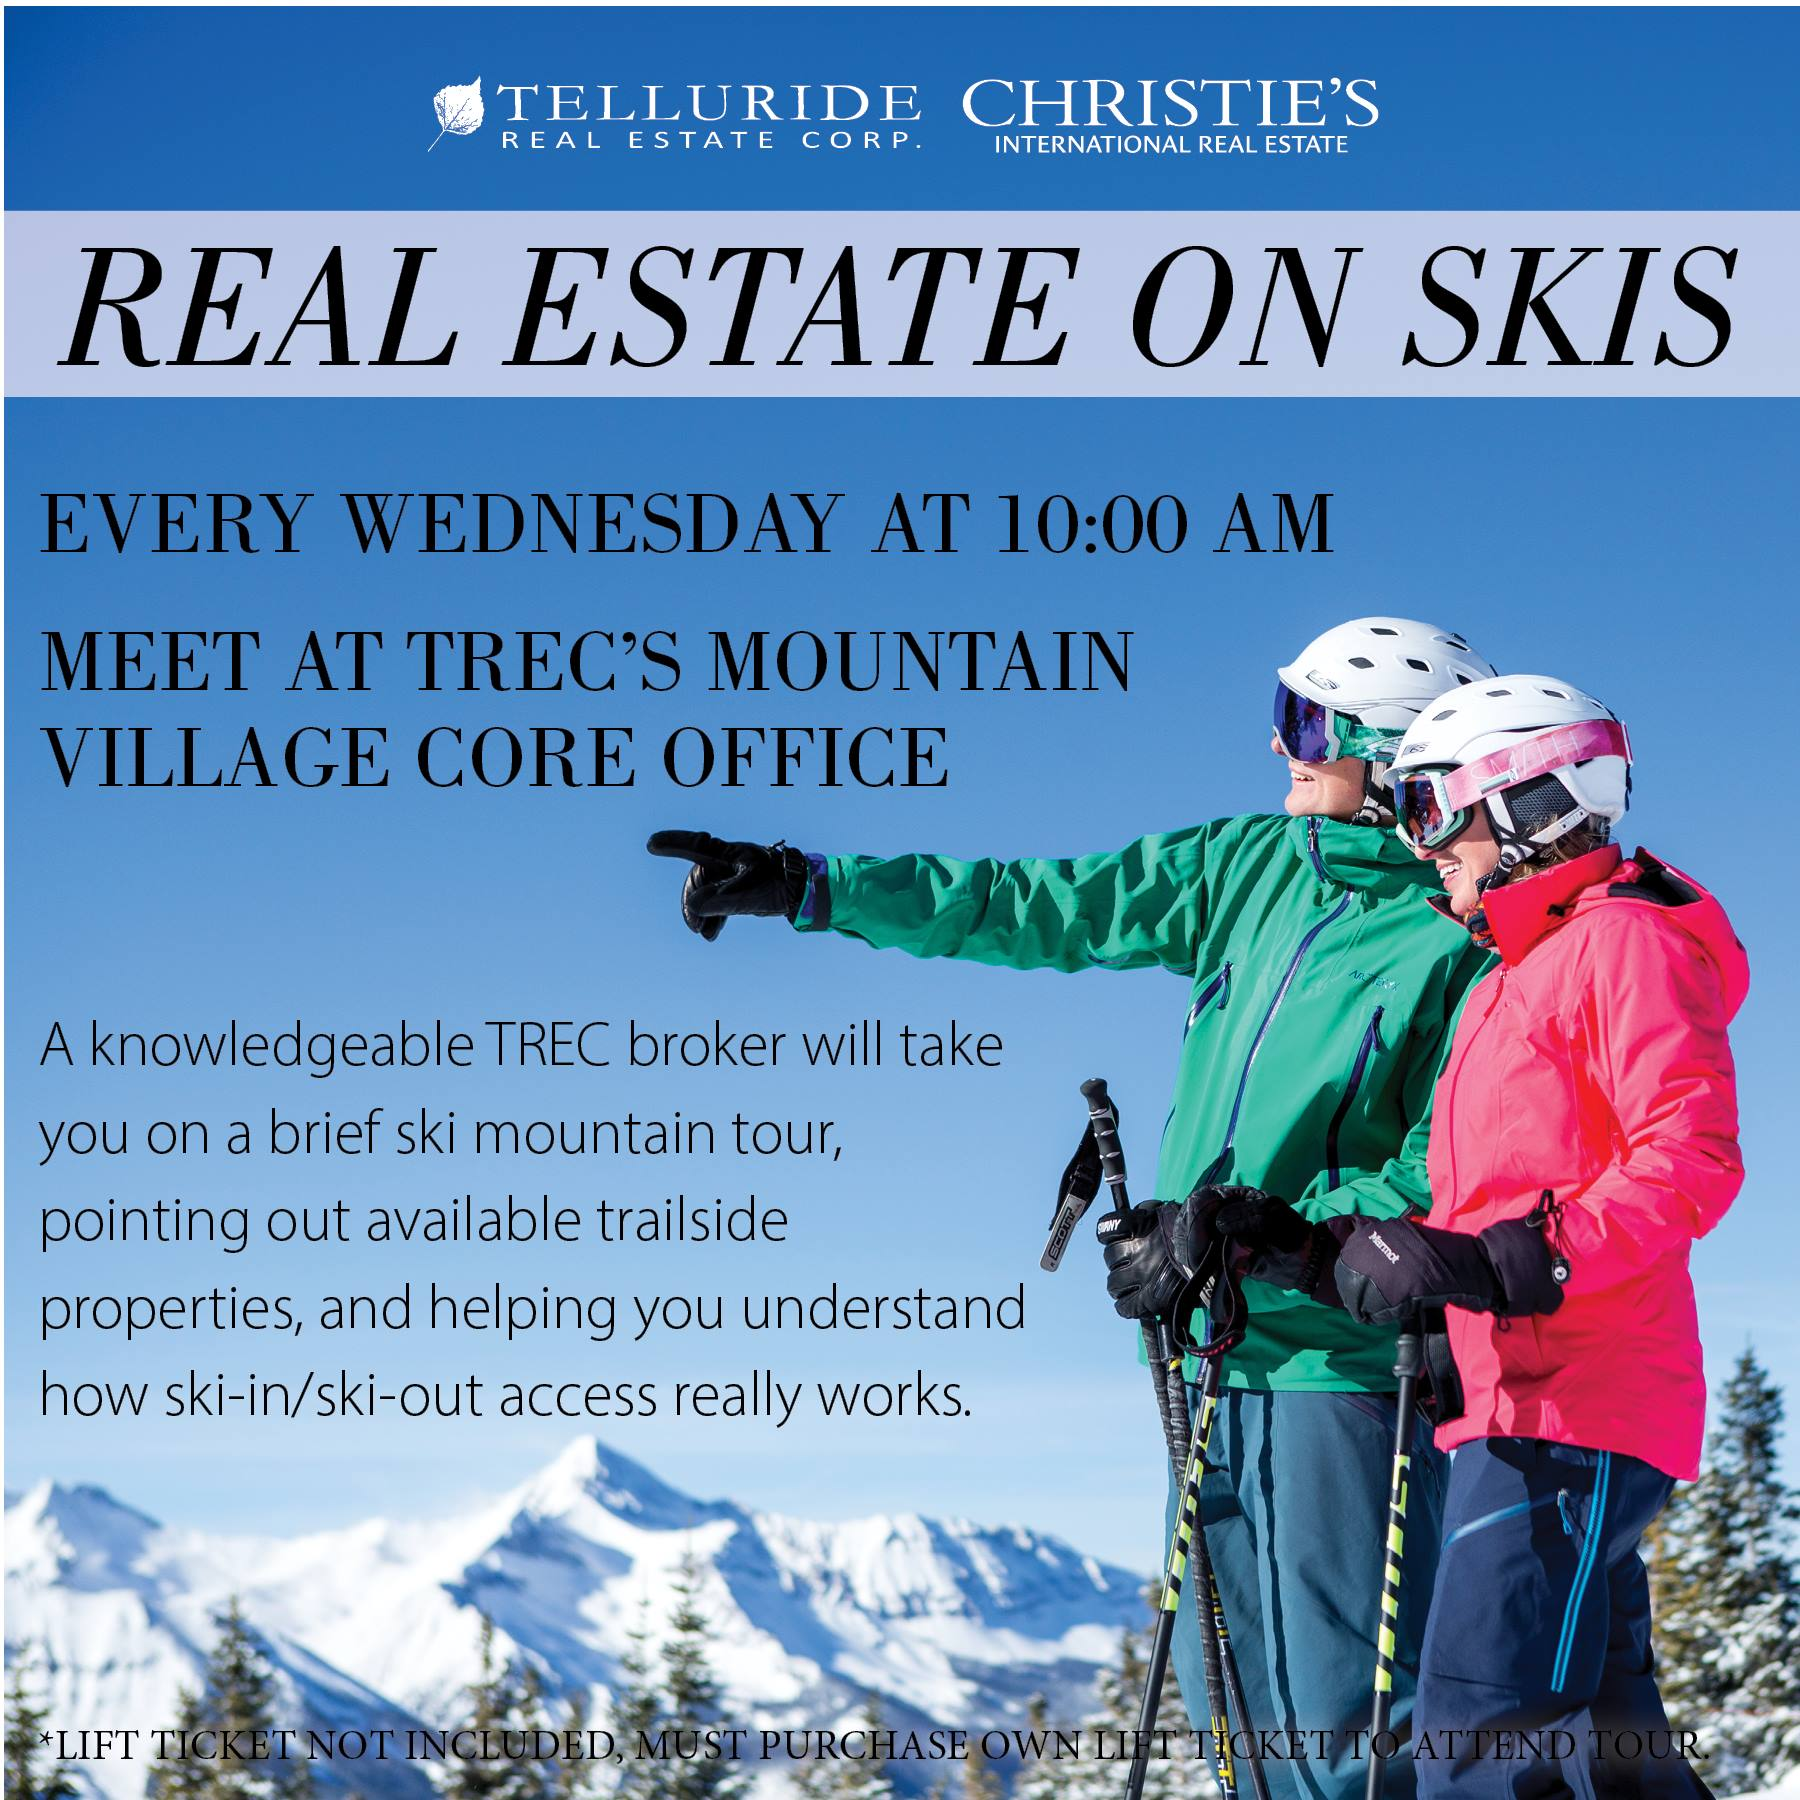 Telluride Real Estate on Skis